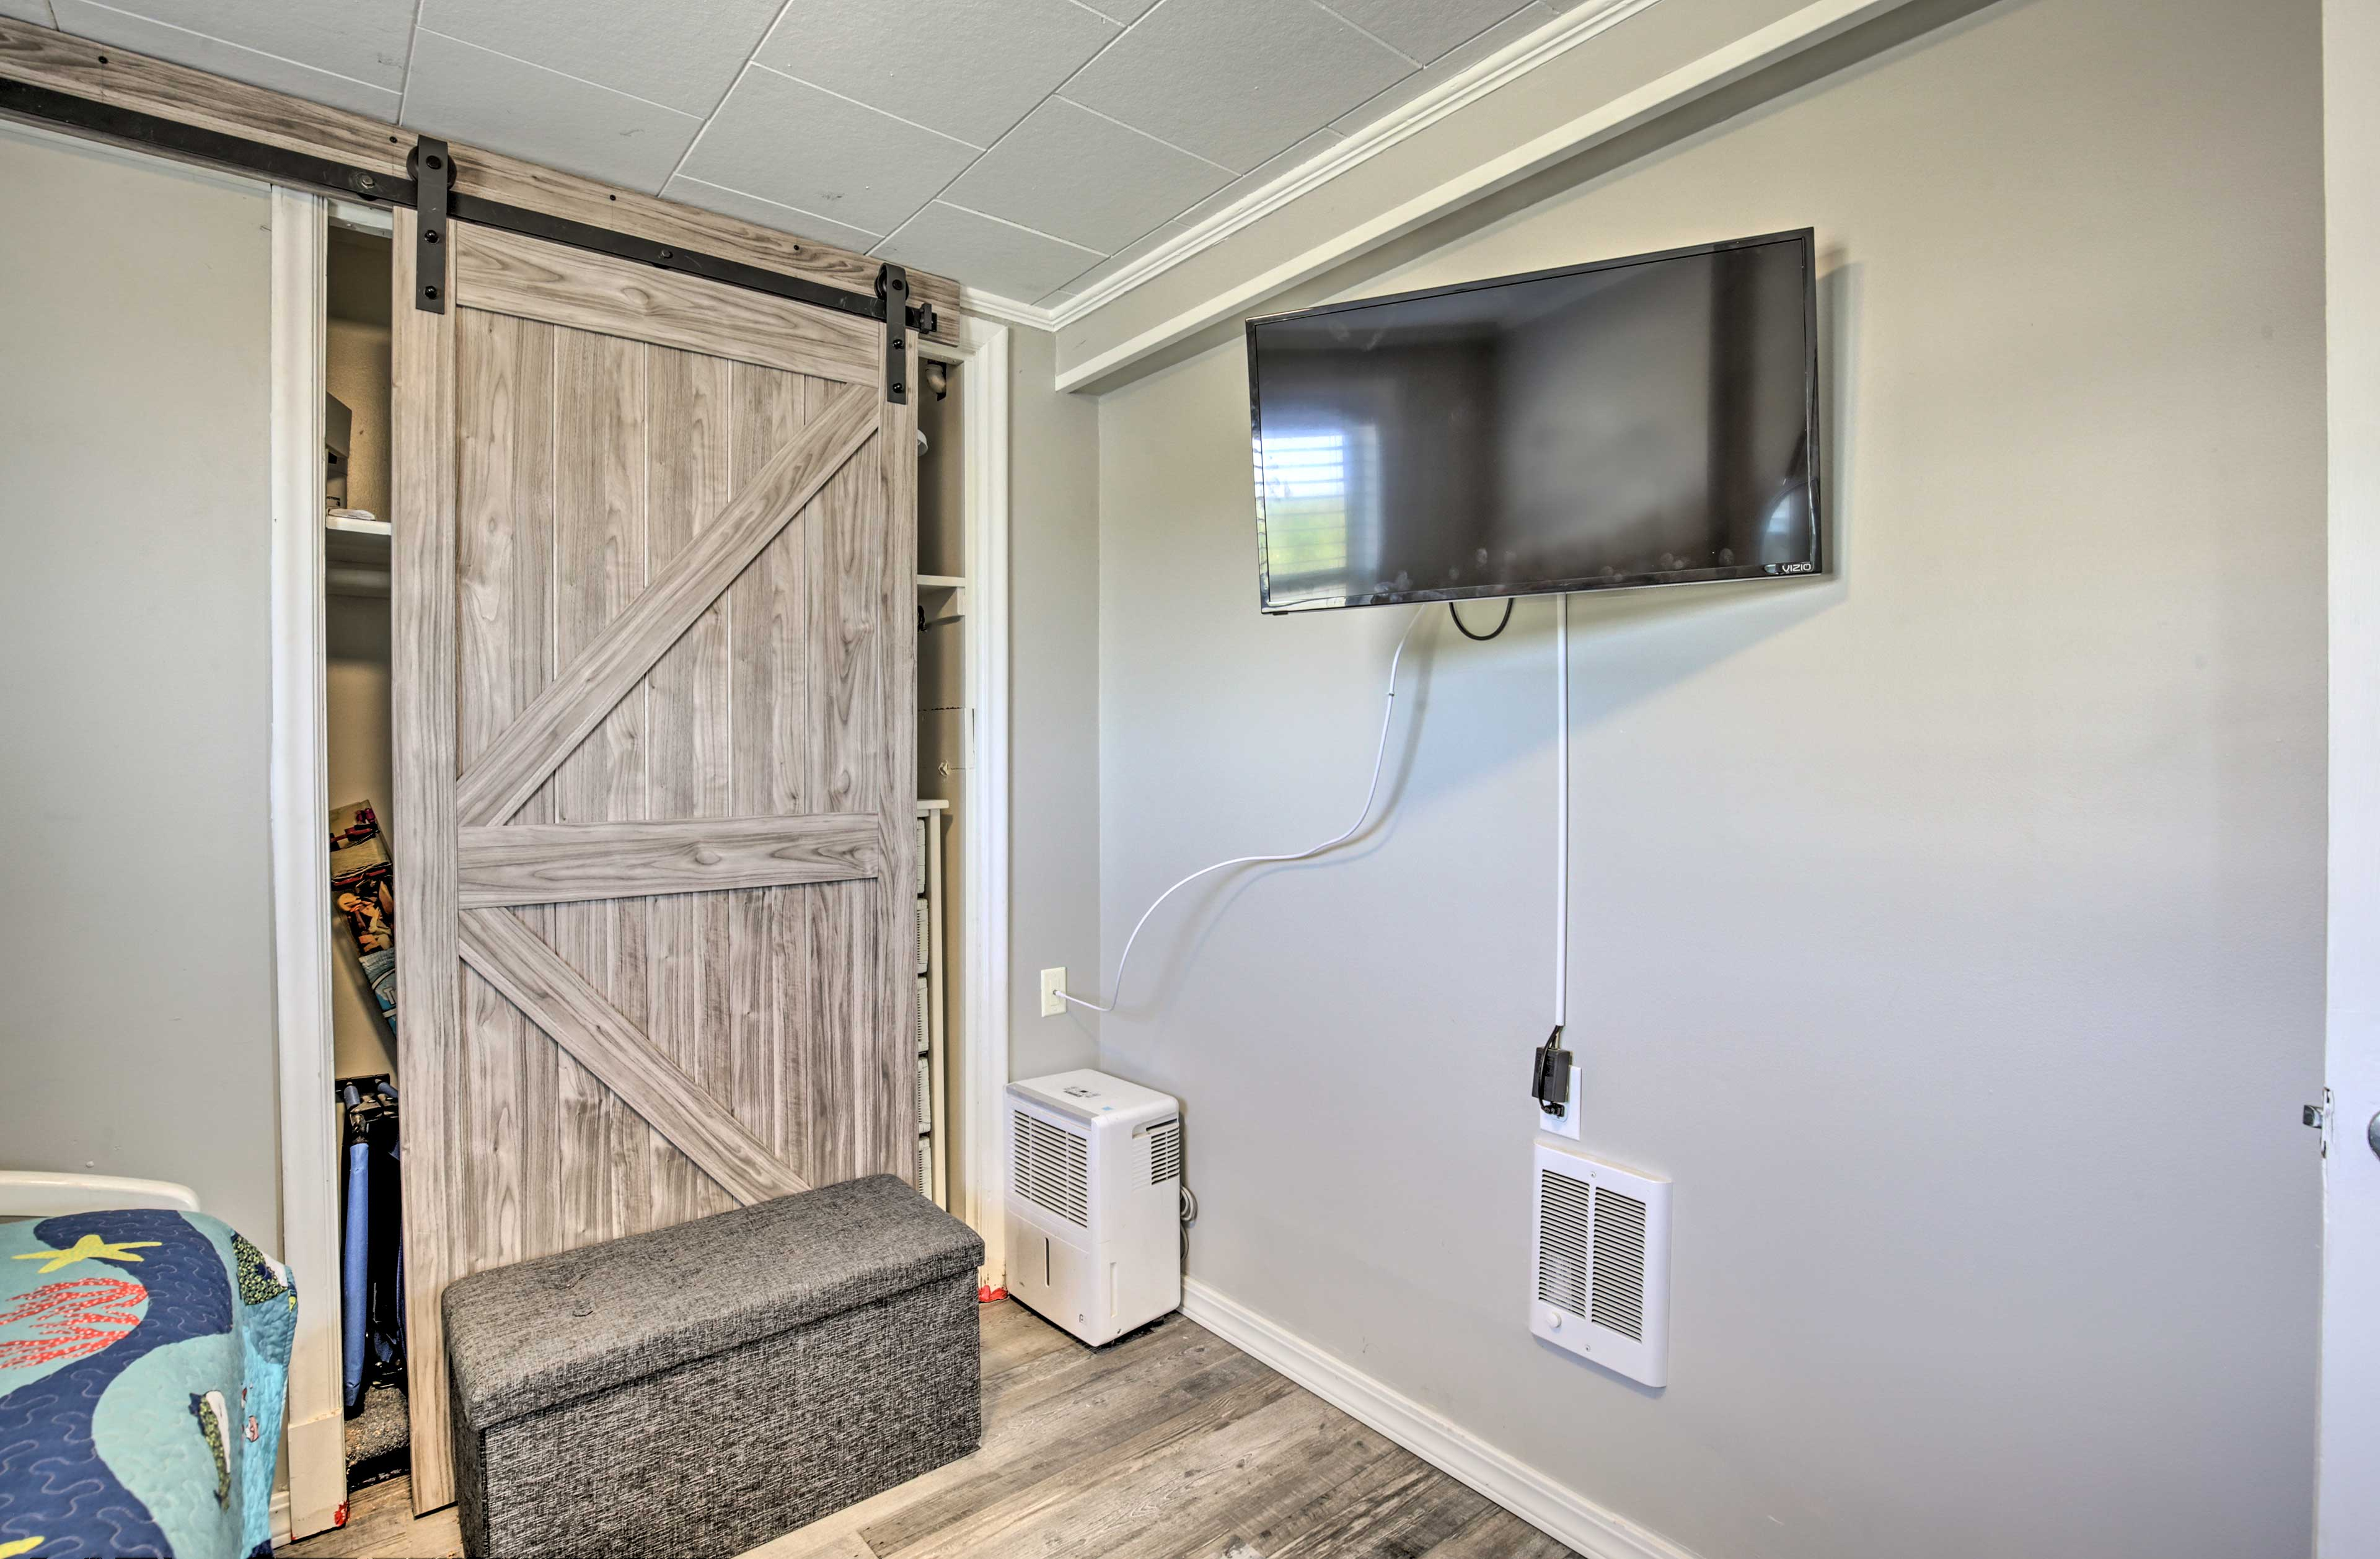 Both bedrooms boast their own flat-screen Smart TVs with cable.